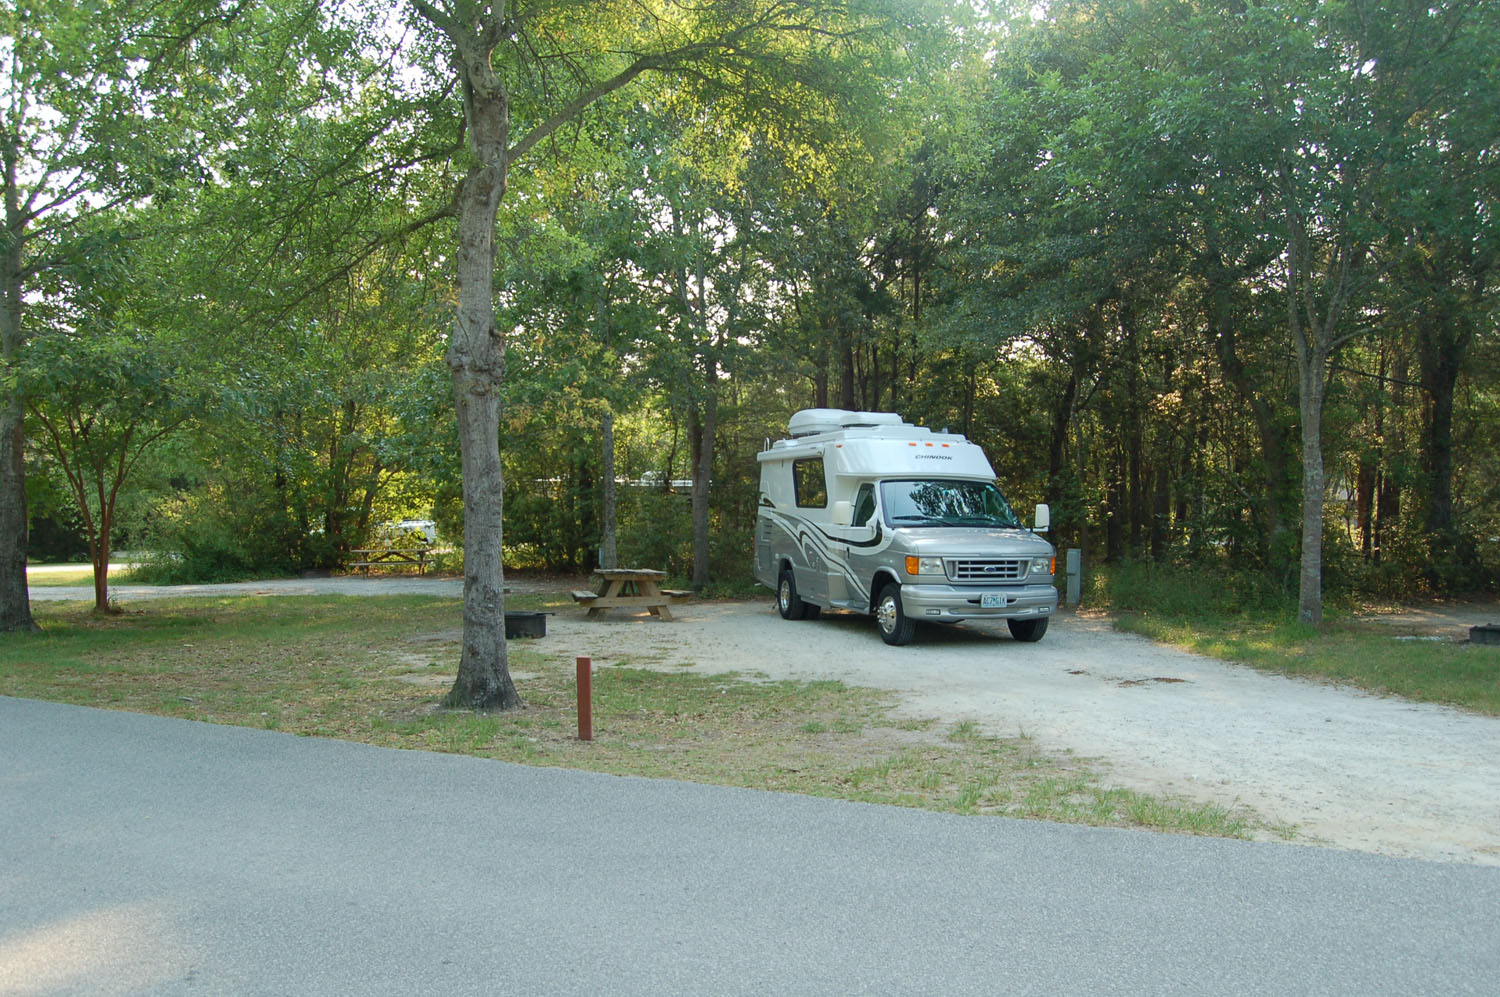 Image of campsite #57 at the Campground at James Island County Park